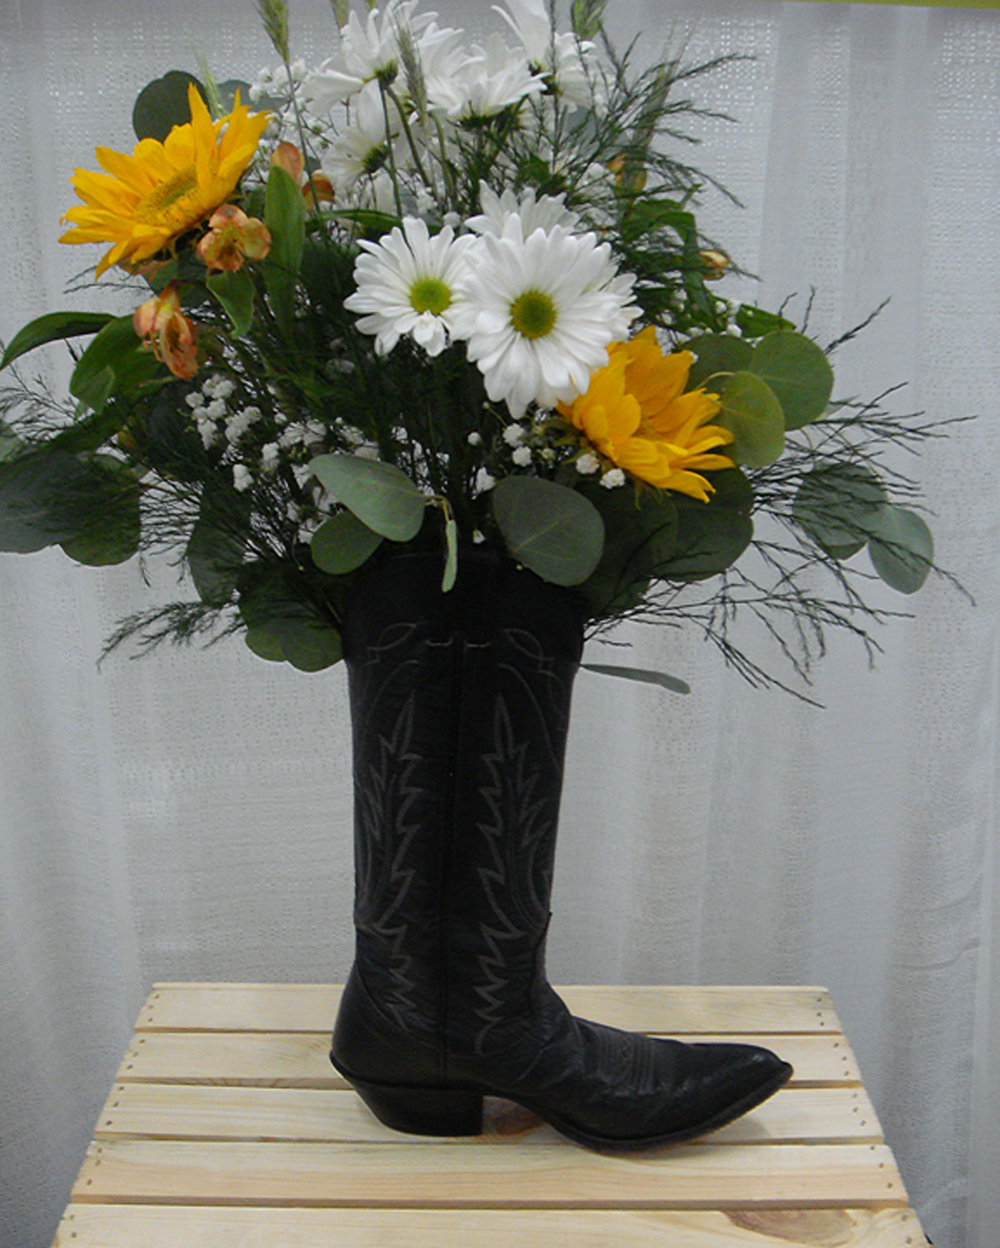 reception/event decor or centerpiece - fresh flowers in cowboy boot